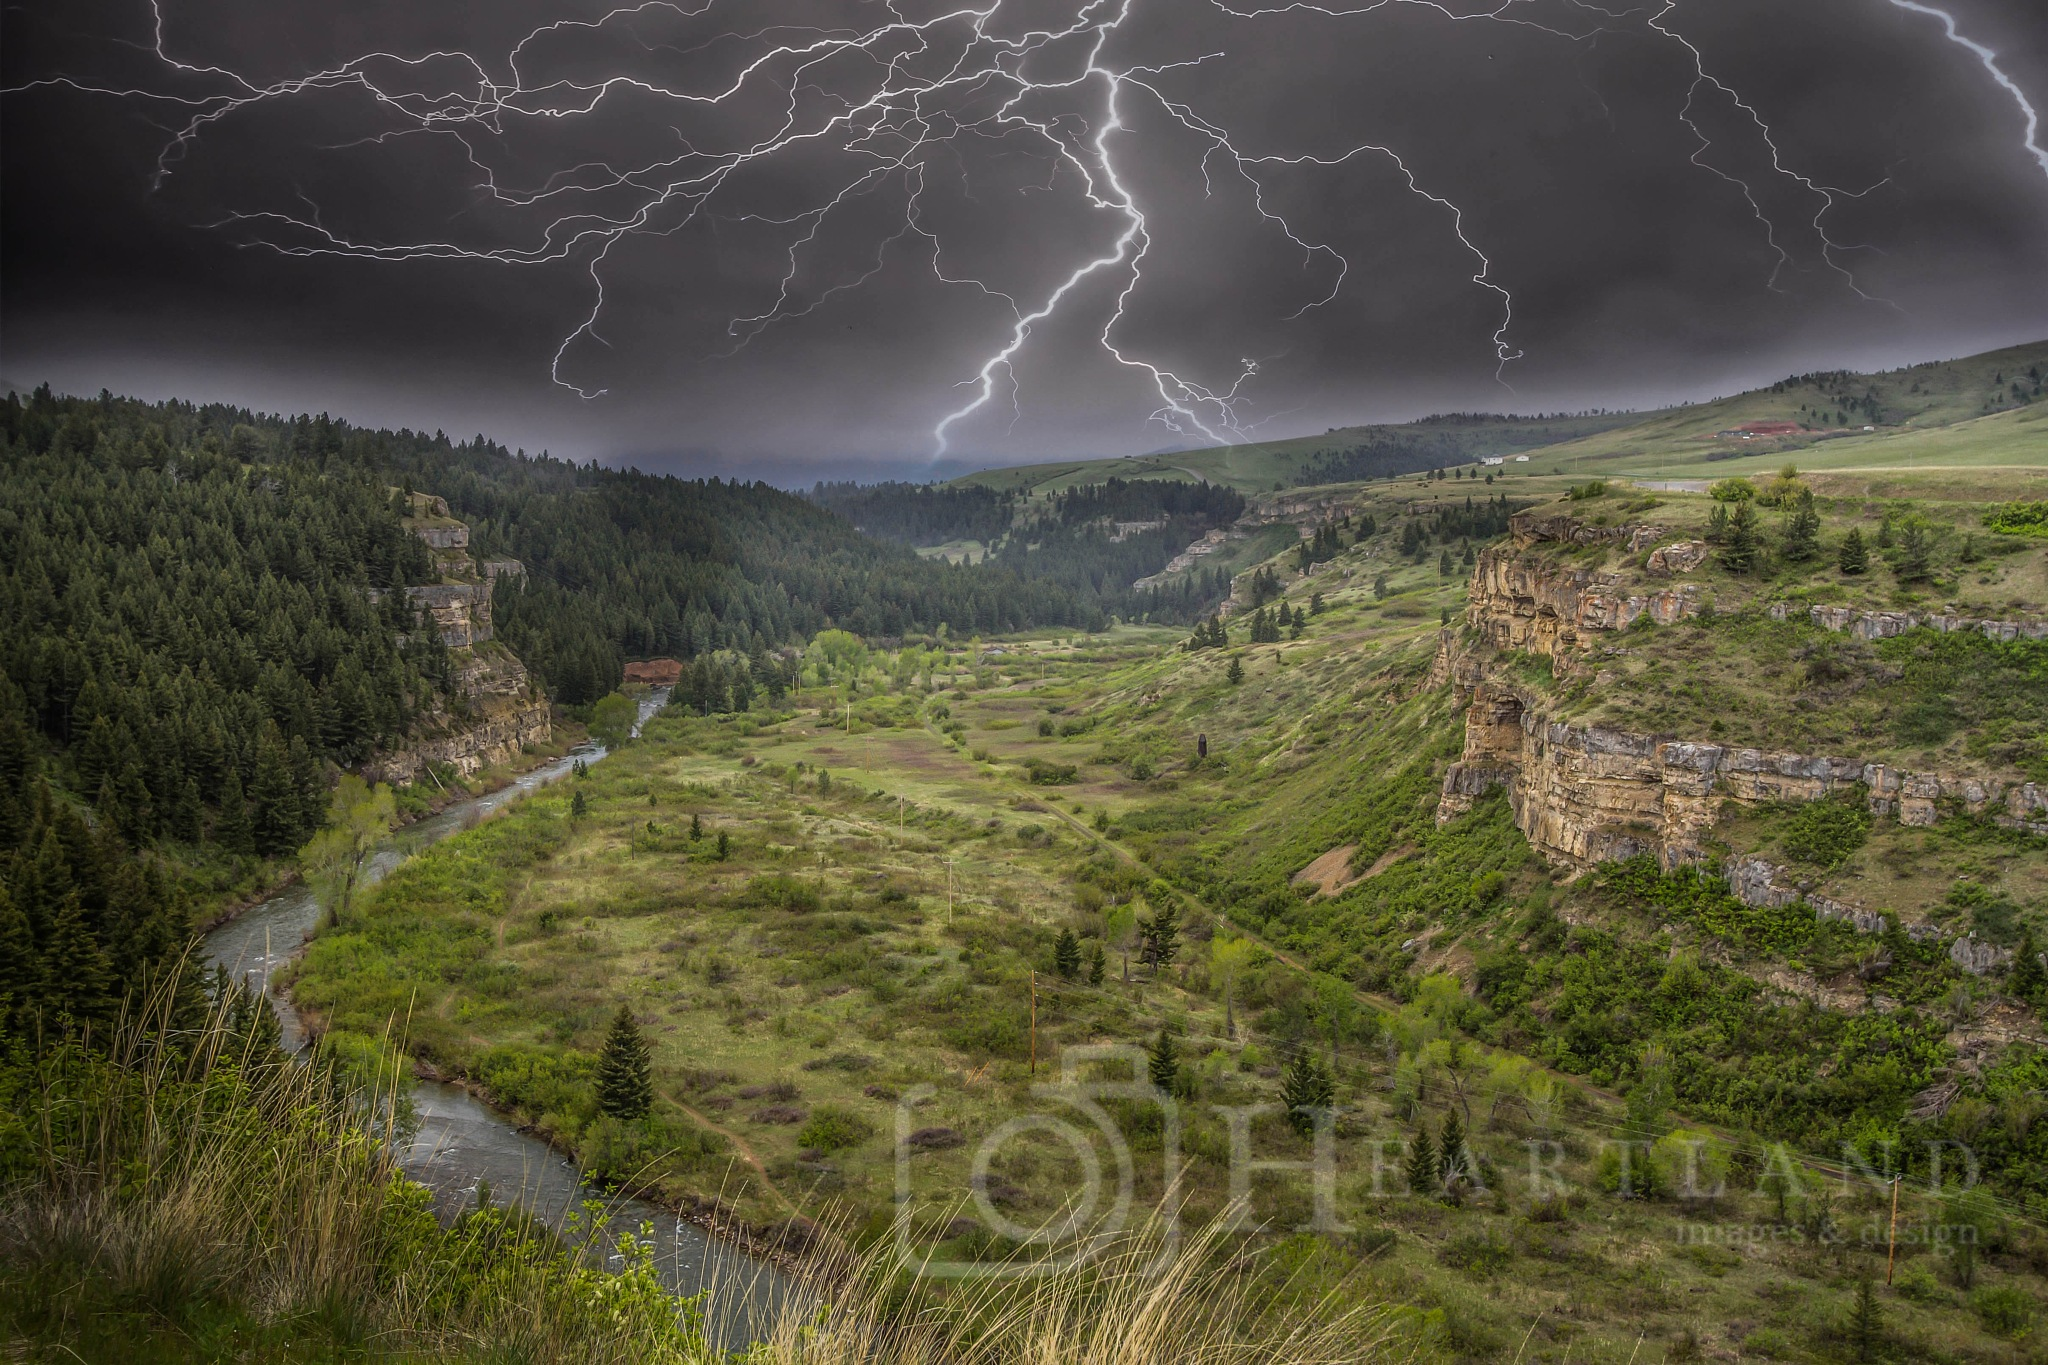 Spectacular Montana by Heartland Images & Design